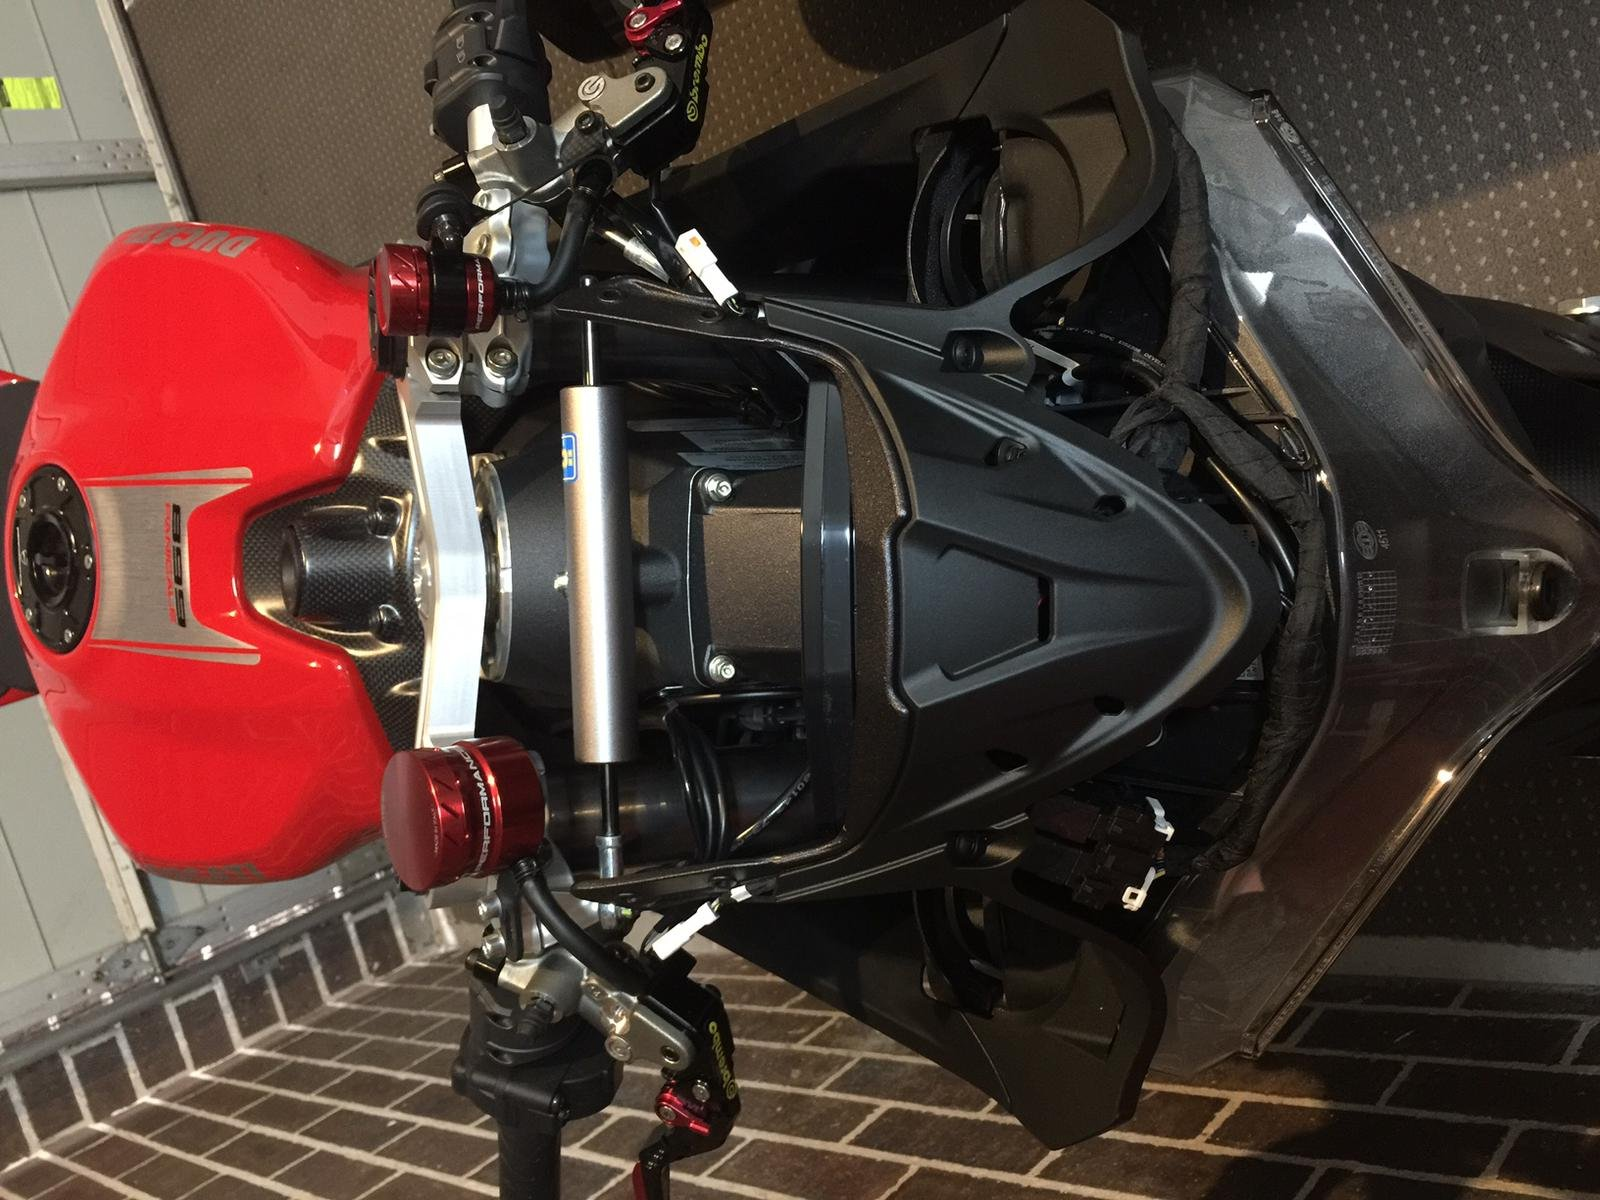 Ducati Front Fairing Removal